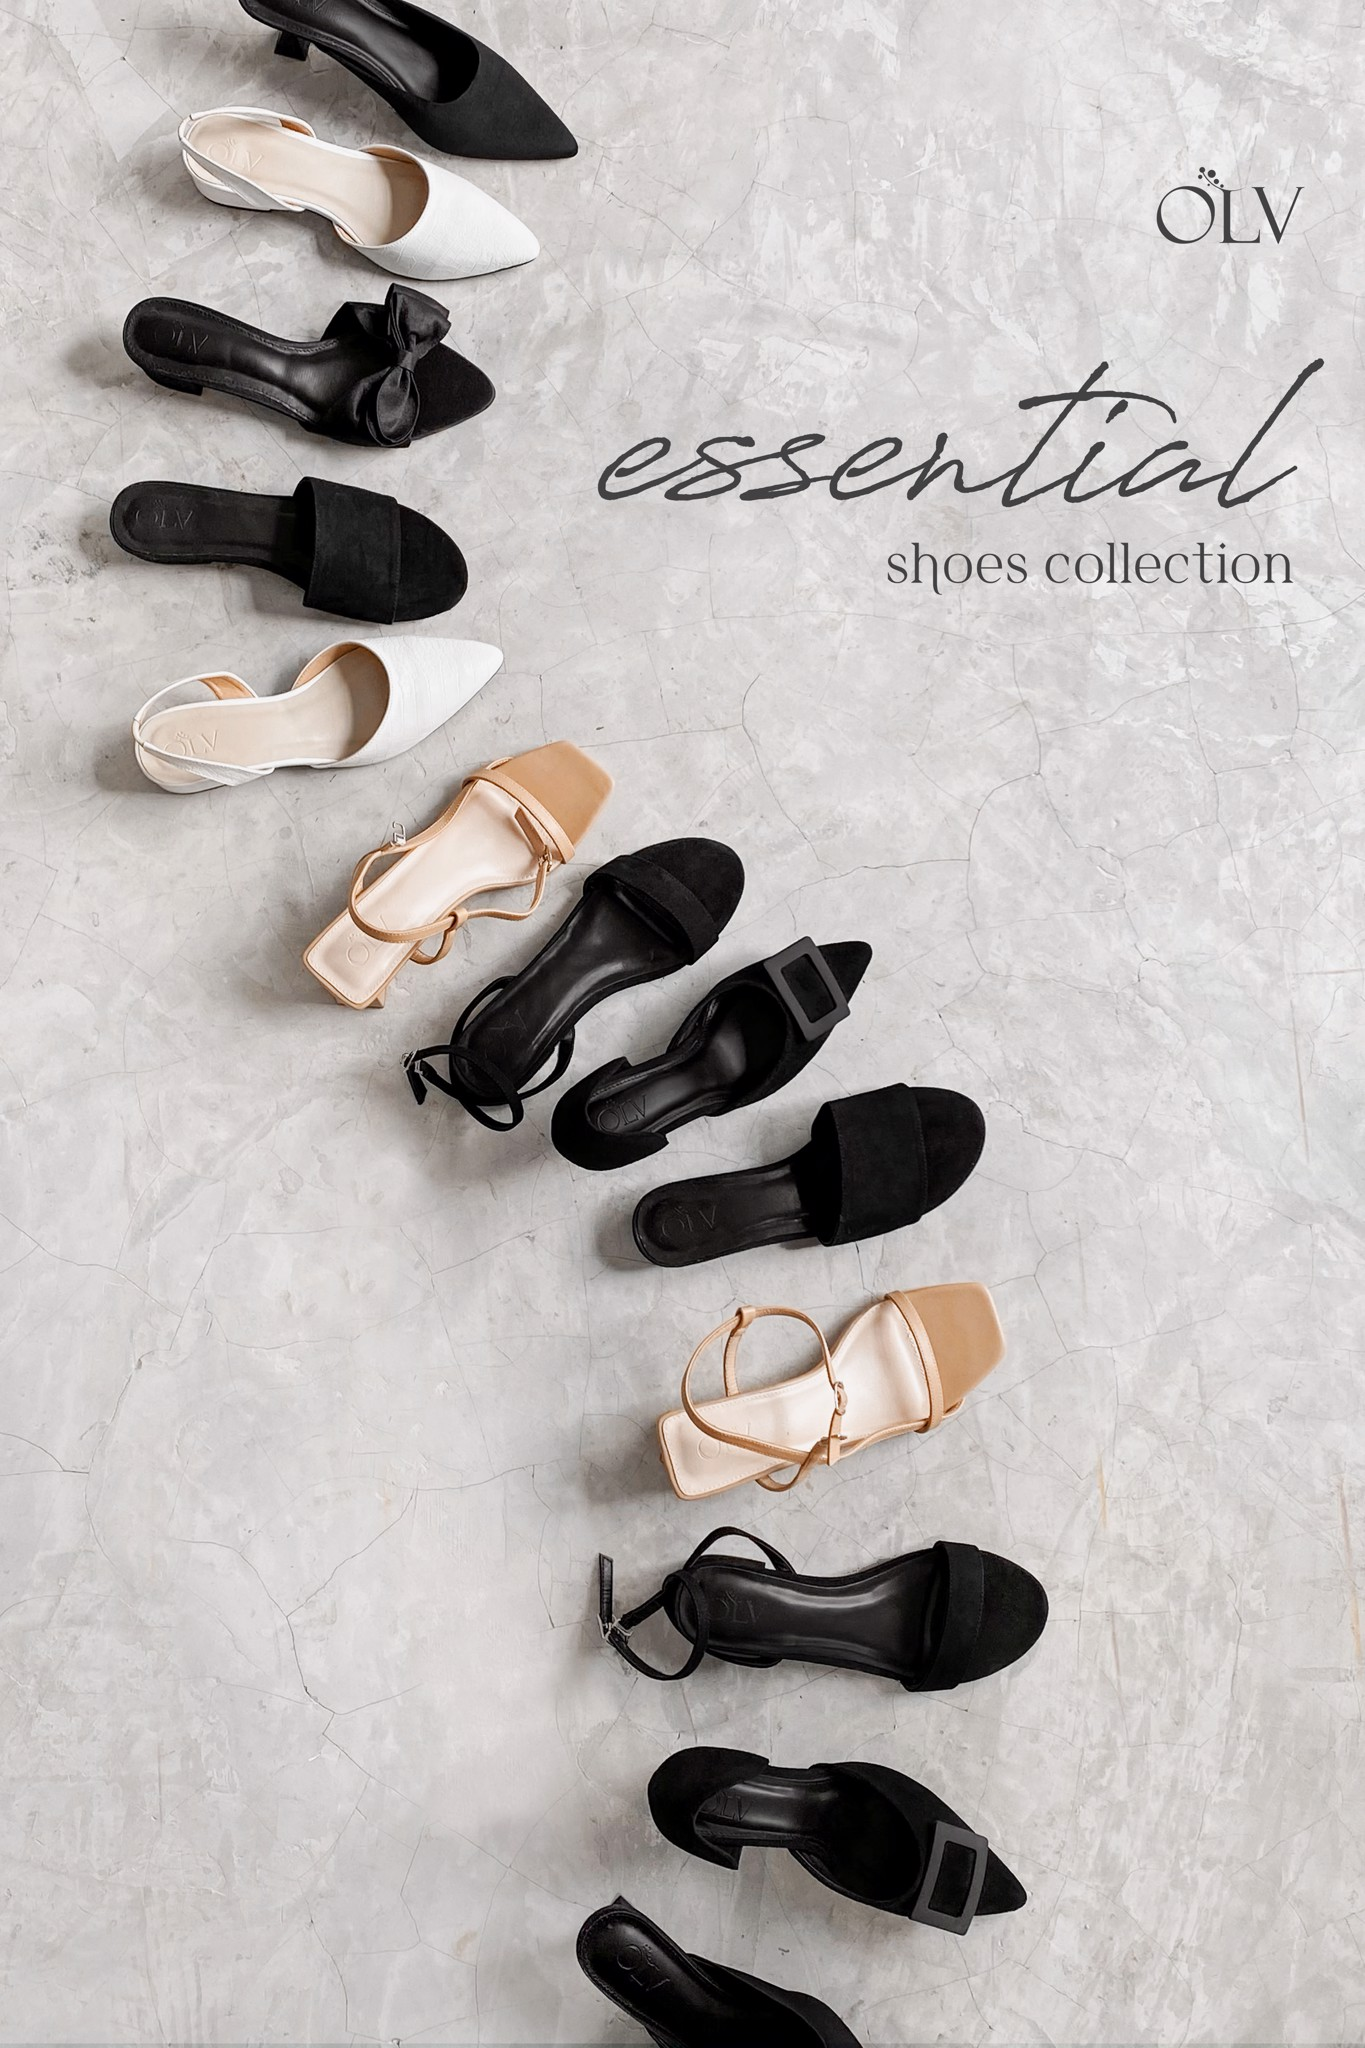 olv essential shoes